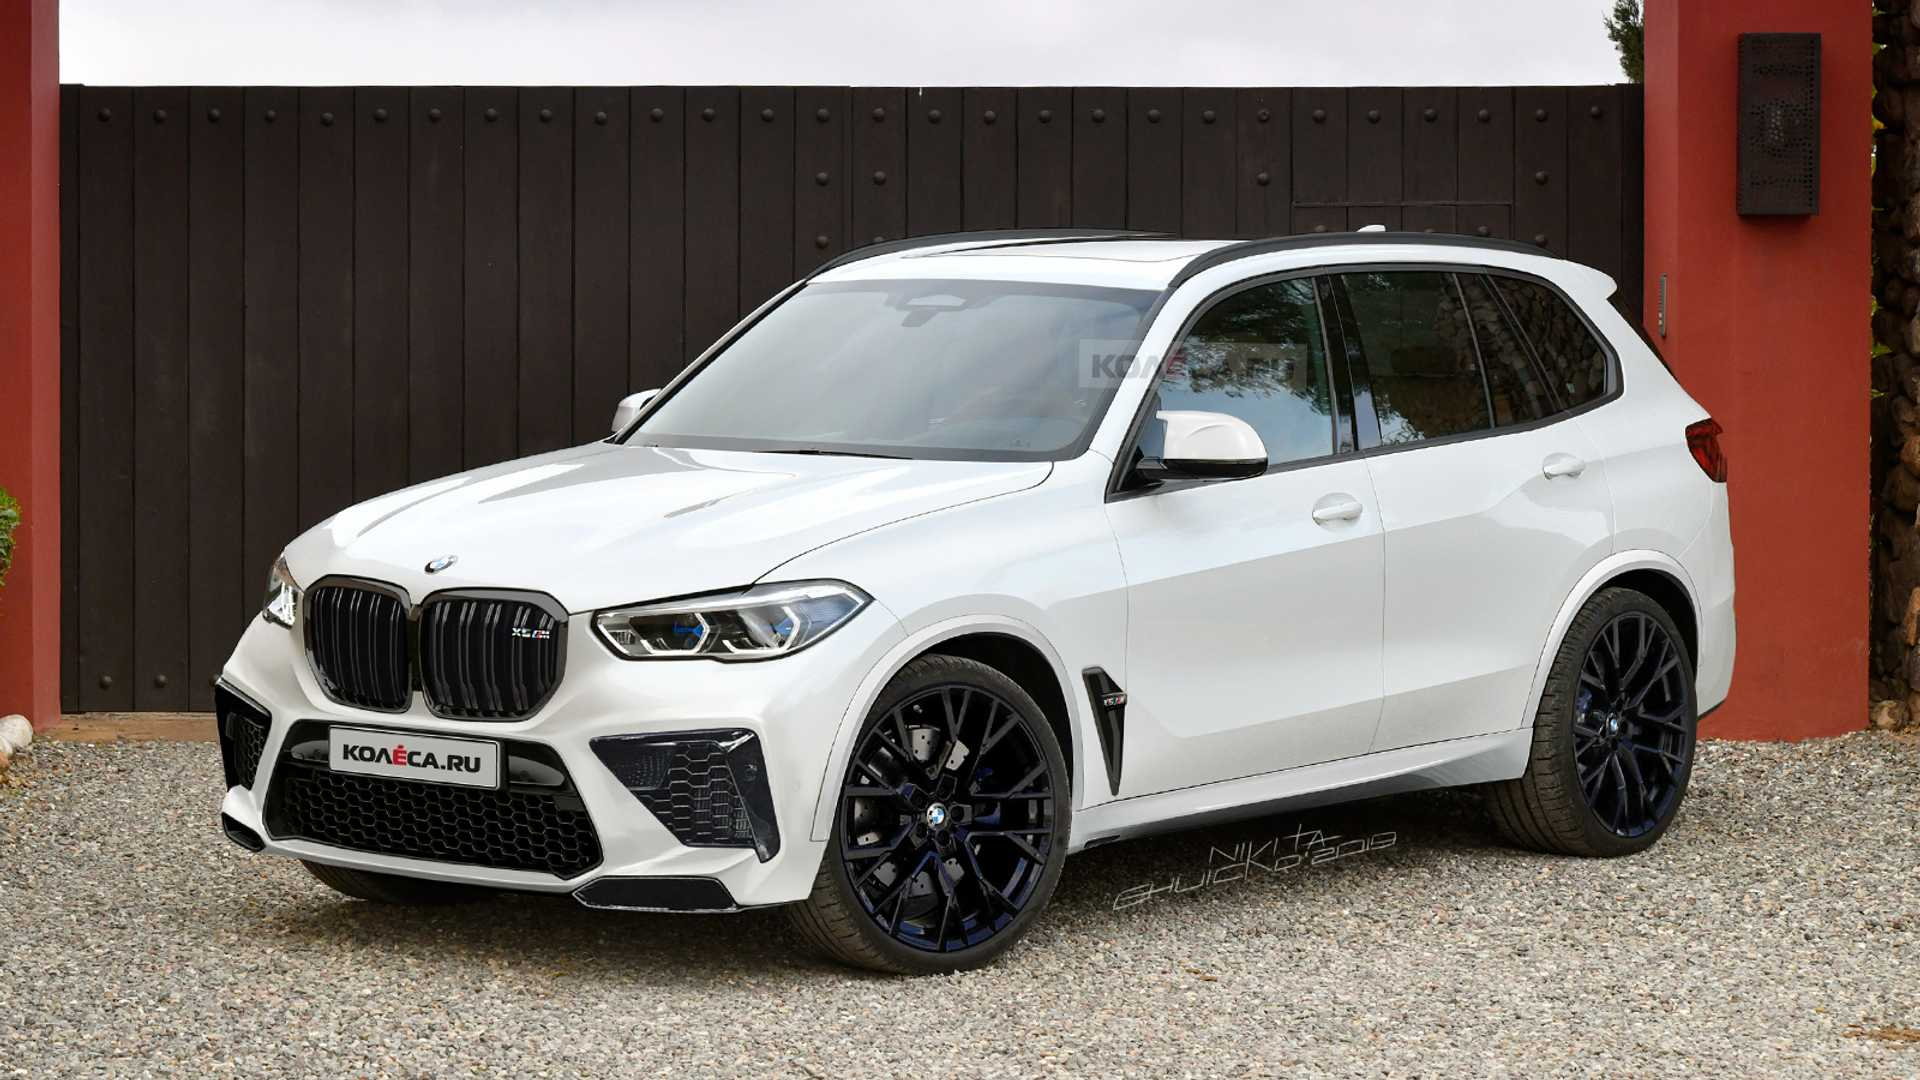 51 Gallery of Bmw X5M 2020 New Concept with Bmw X5M 2020